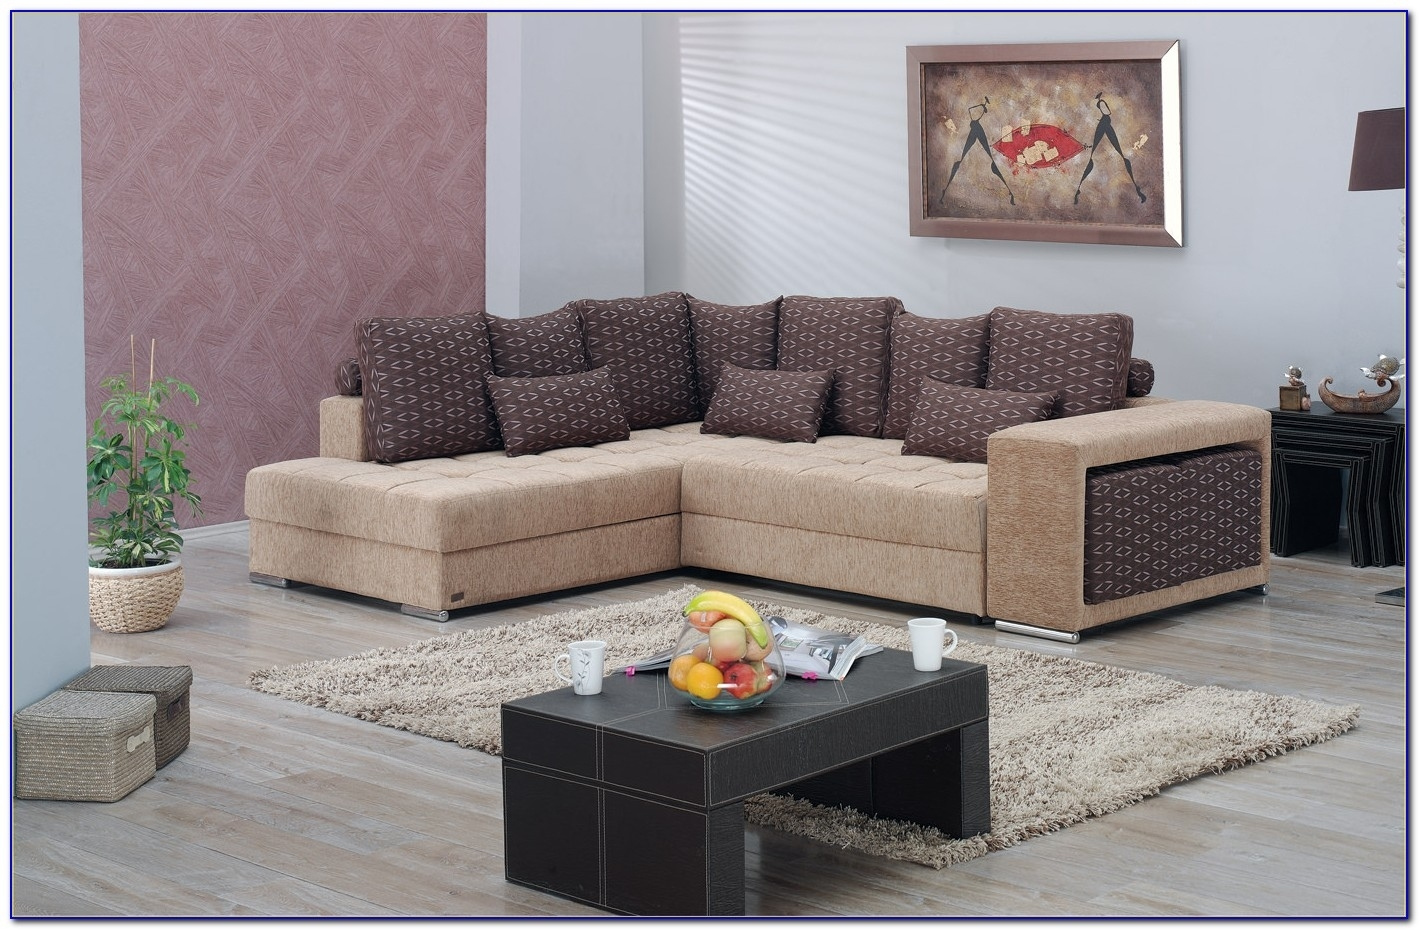 Fancy Kmart Sectional Sofa 82 For Sectional Sofas Ct With Kmart Within Kmart Sectional Sofas (Image 5 of 10)